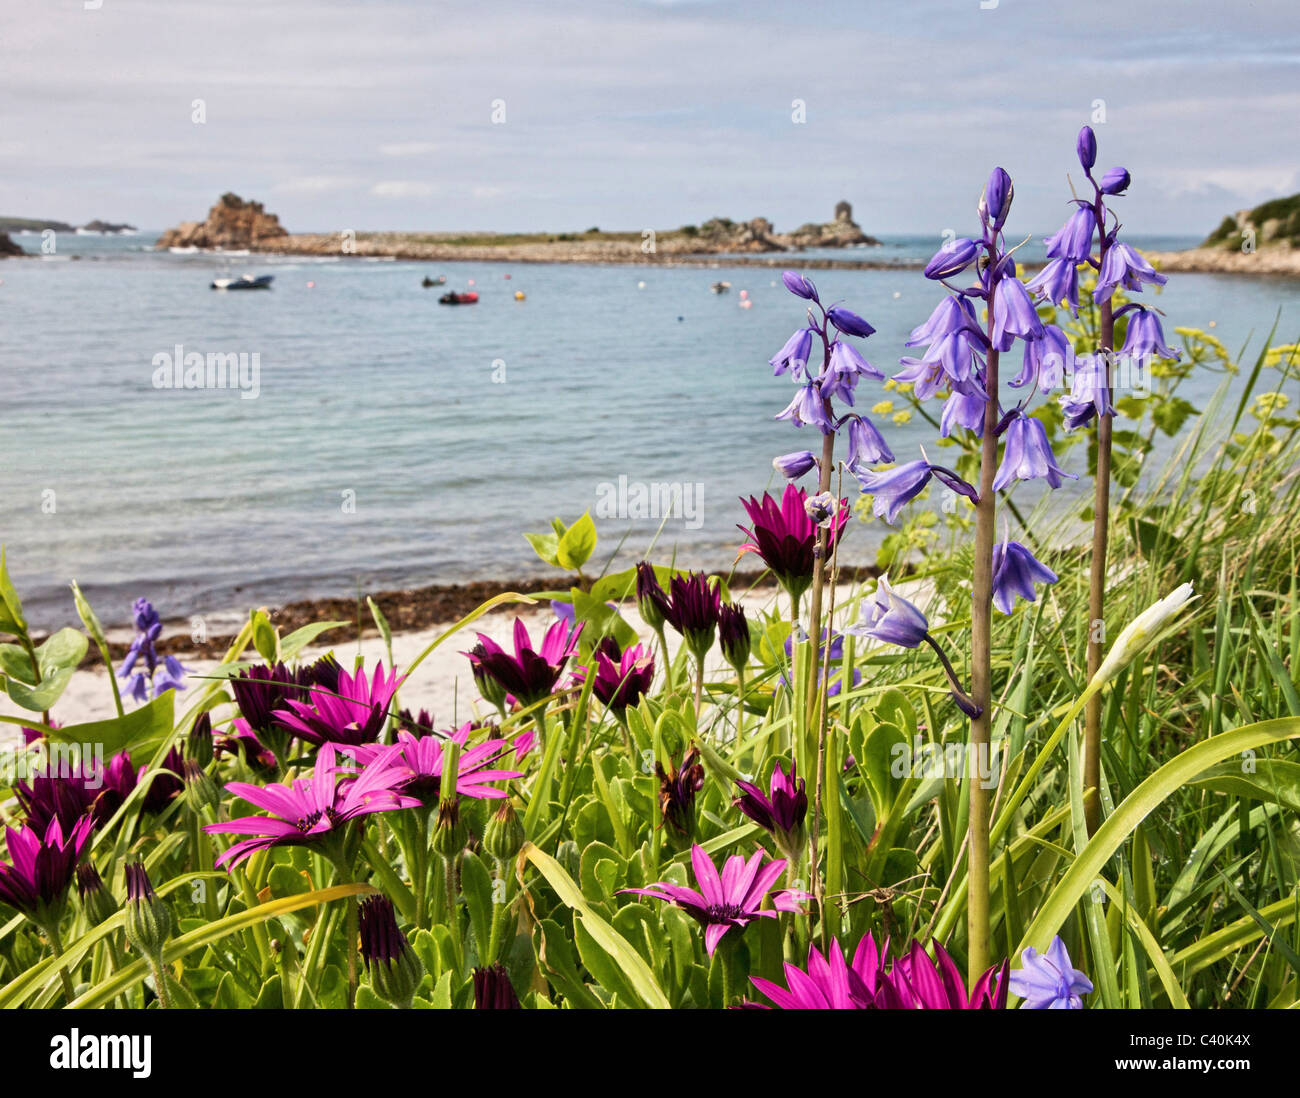 Spanish bluebells and South African daisies by Periglis beach on St Agnes in the Isles of Scilly - Stock Image